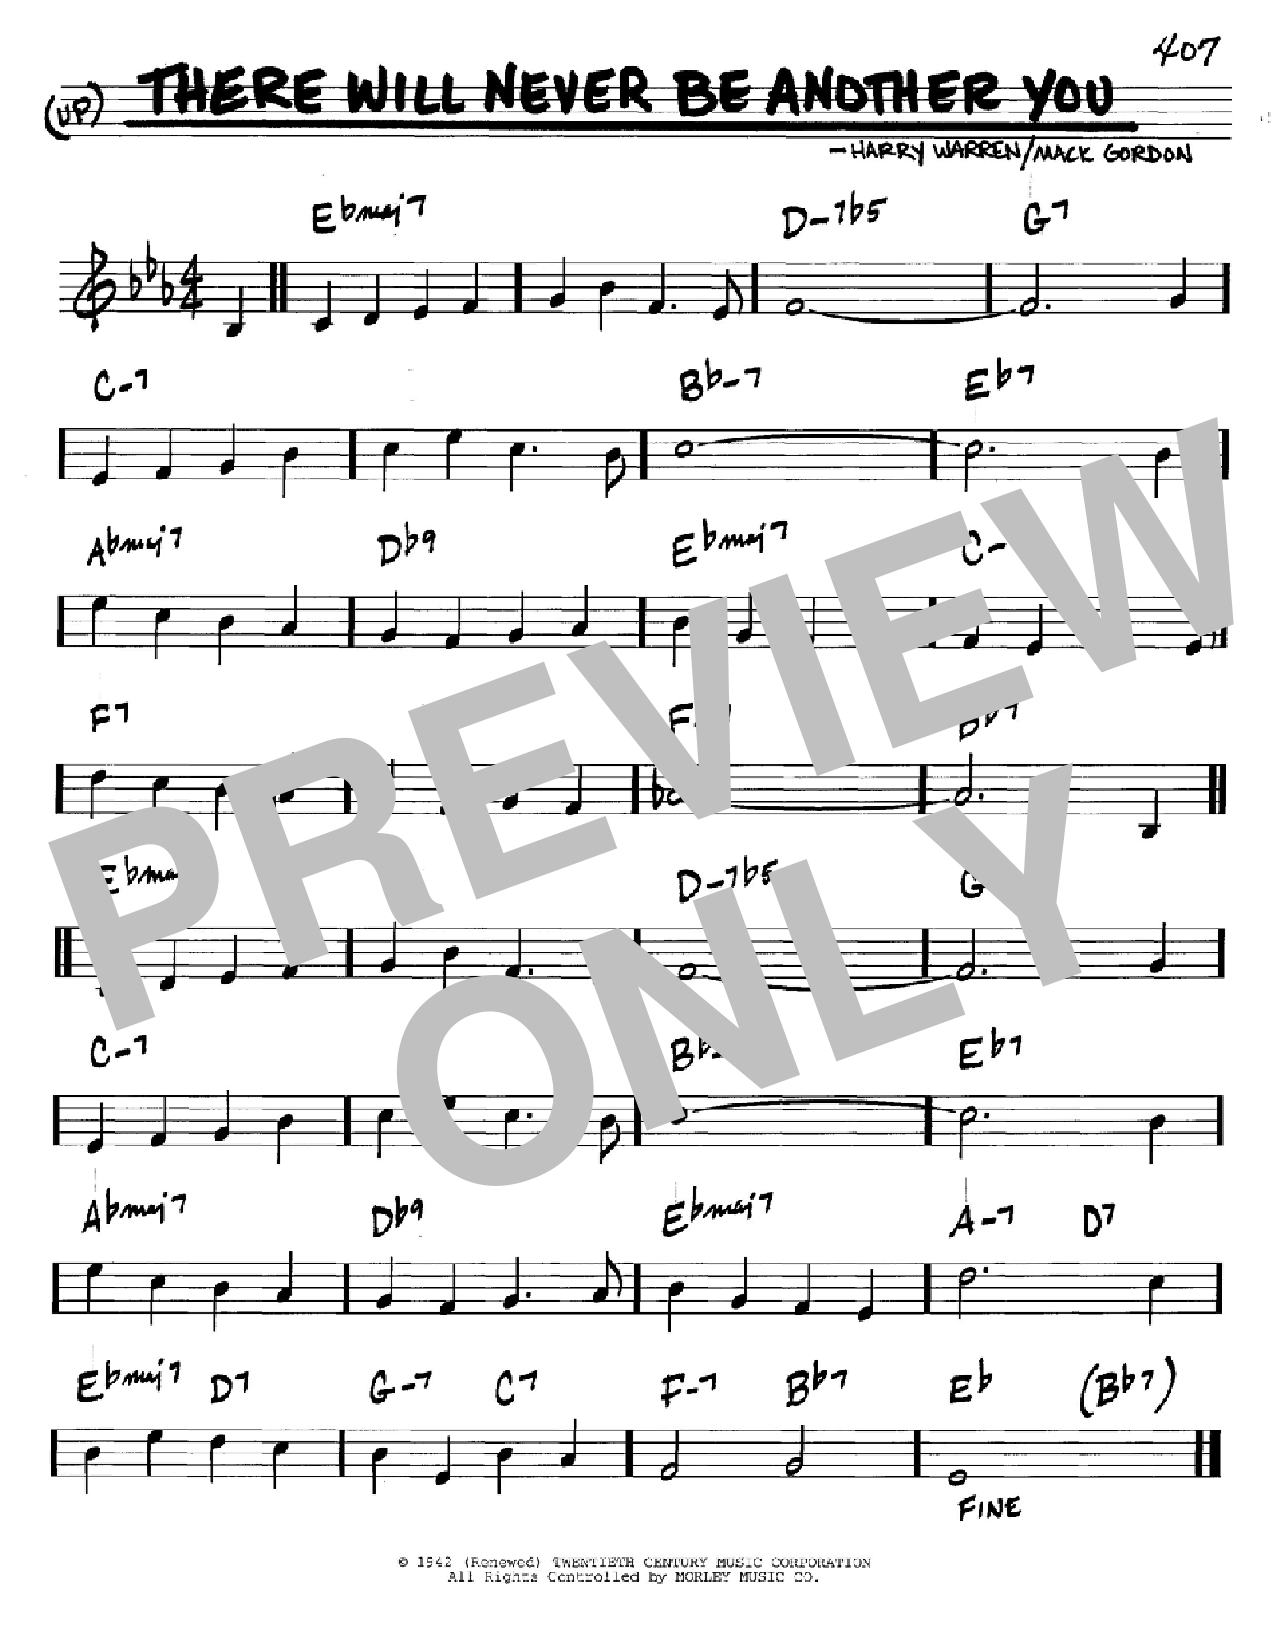 There Will Never Be Another You Sheet Music By Mack Gordon Real Book